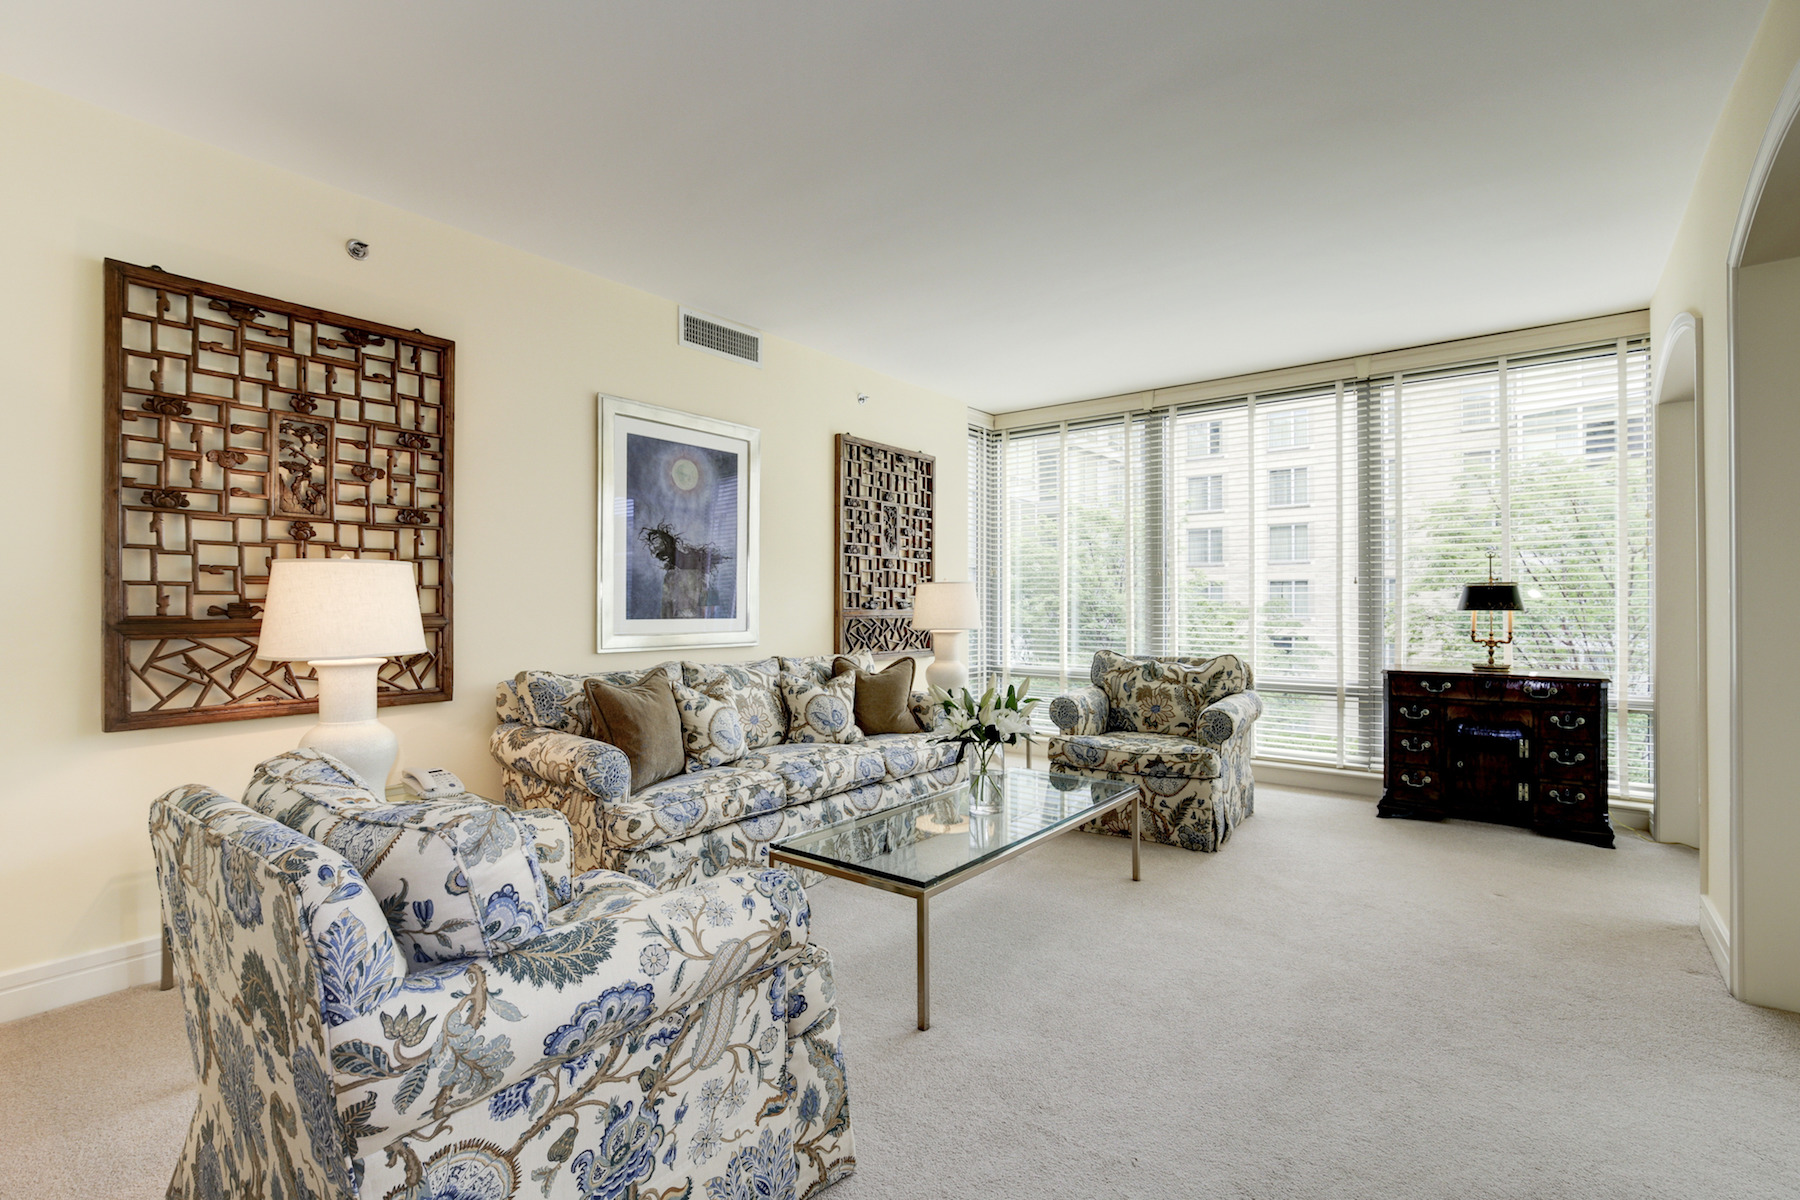 Additional photo for property listing at 1155 23rd Street NW #7g 1155 23rd Street NW #7g Washington, District Of Columbia 20037 United States